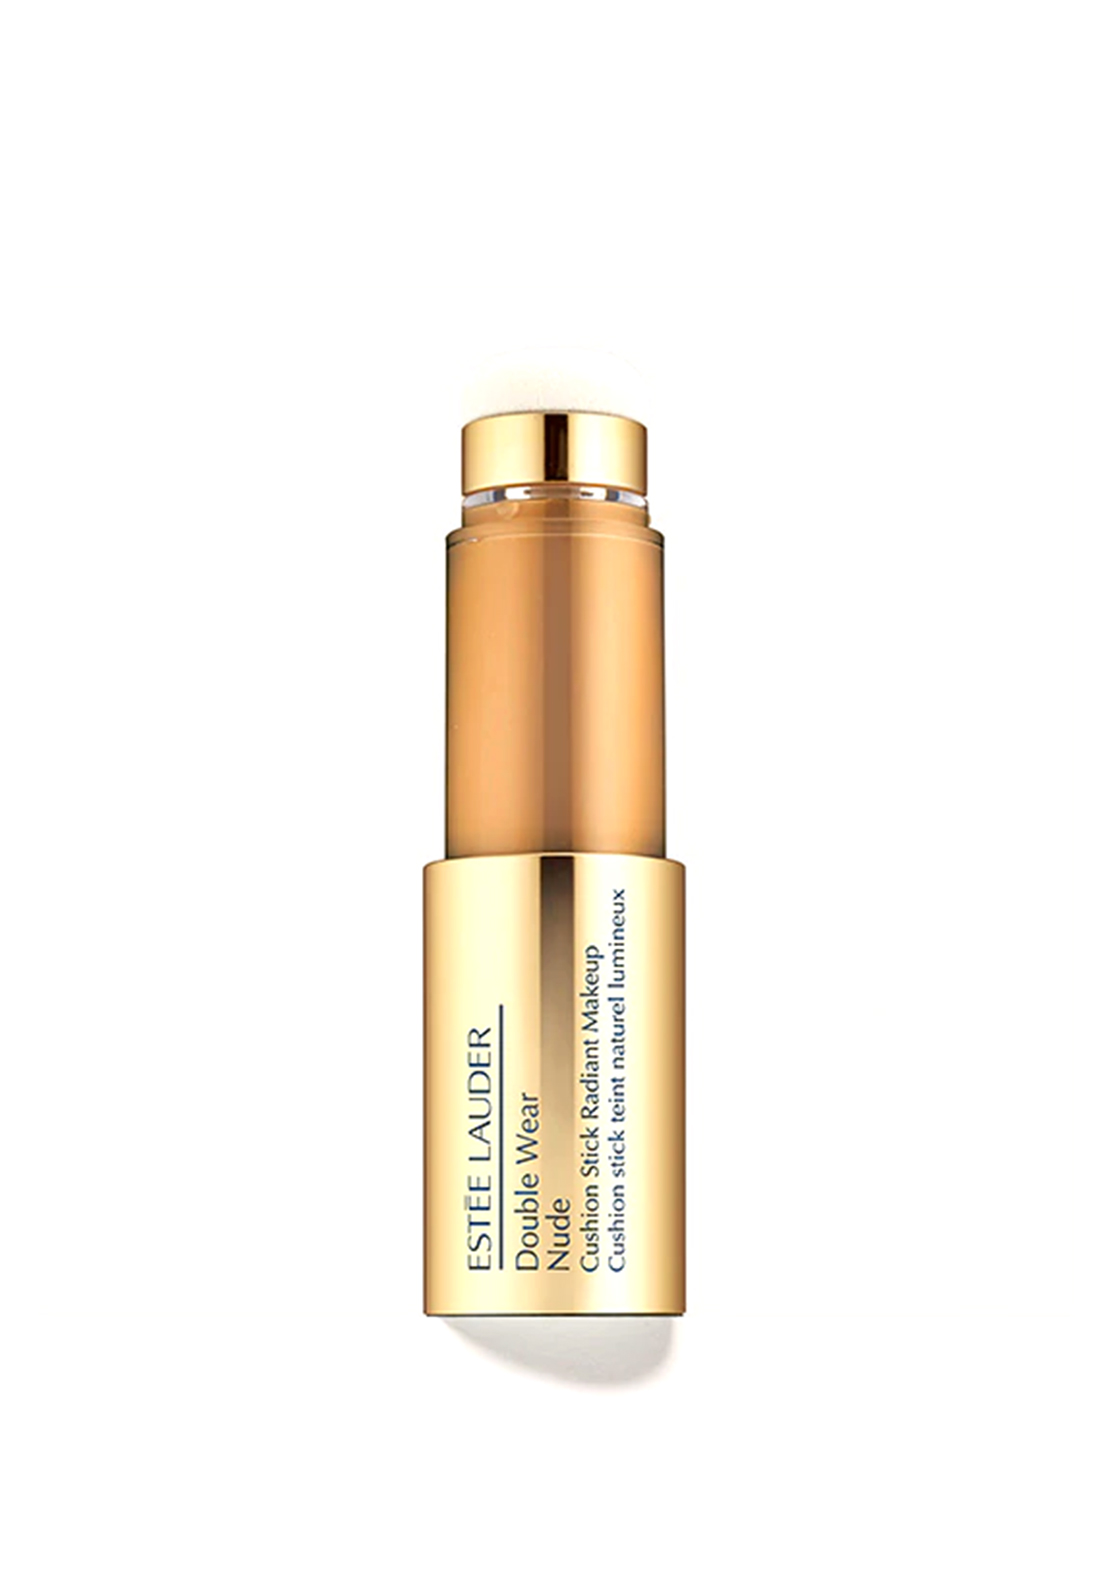 Estee Lauder Double Wear Nude Cushion Stick, Tawny